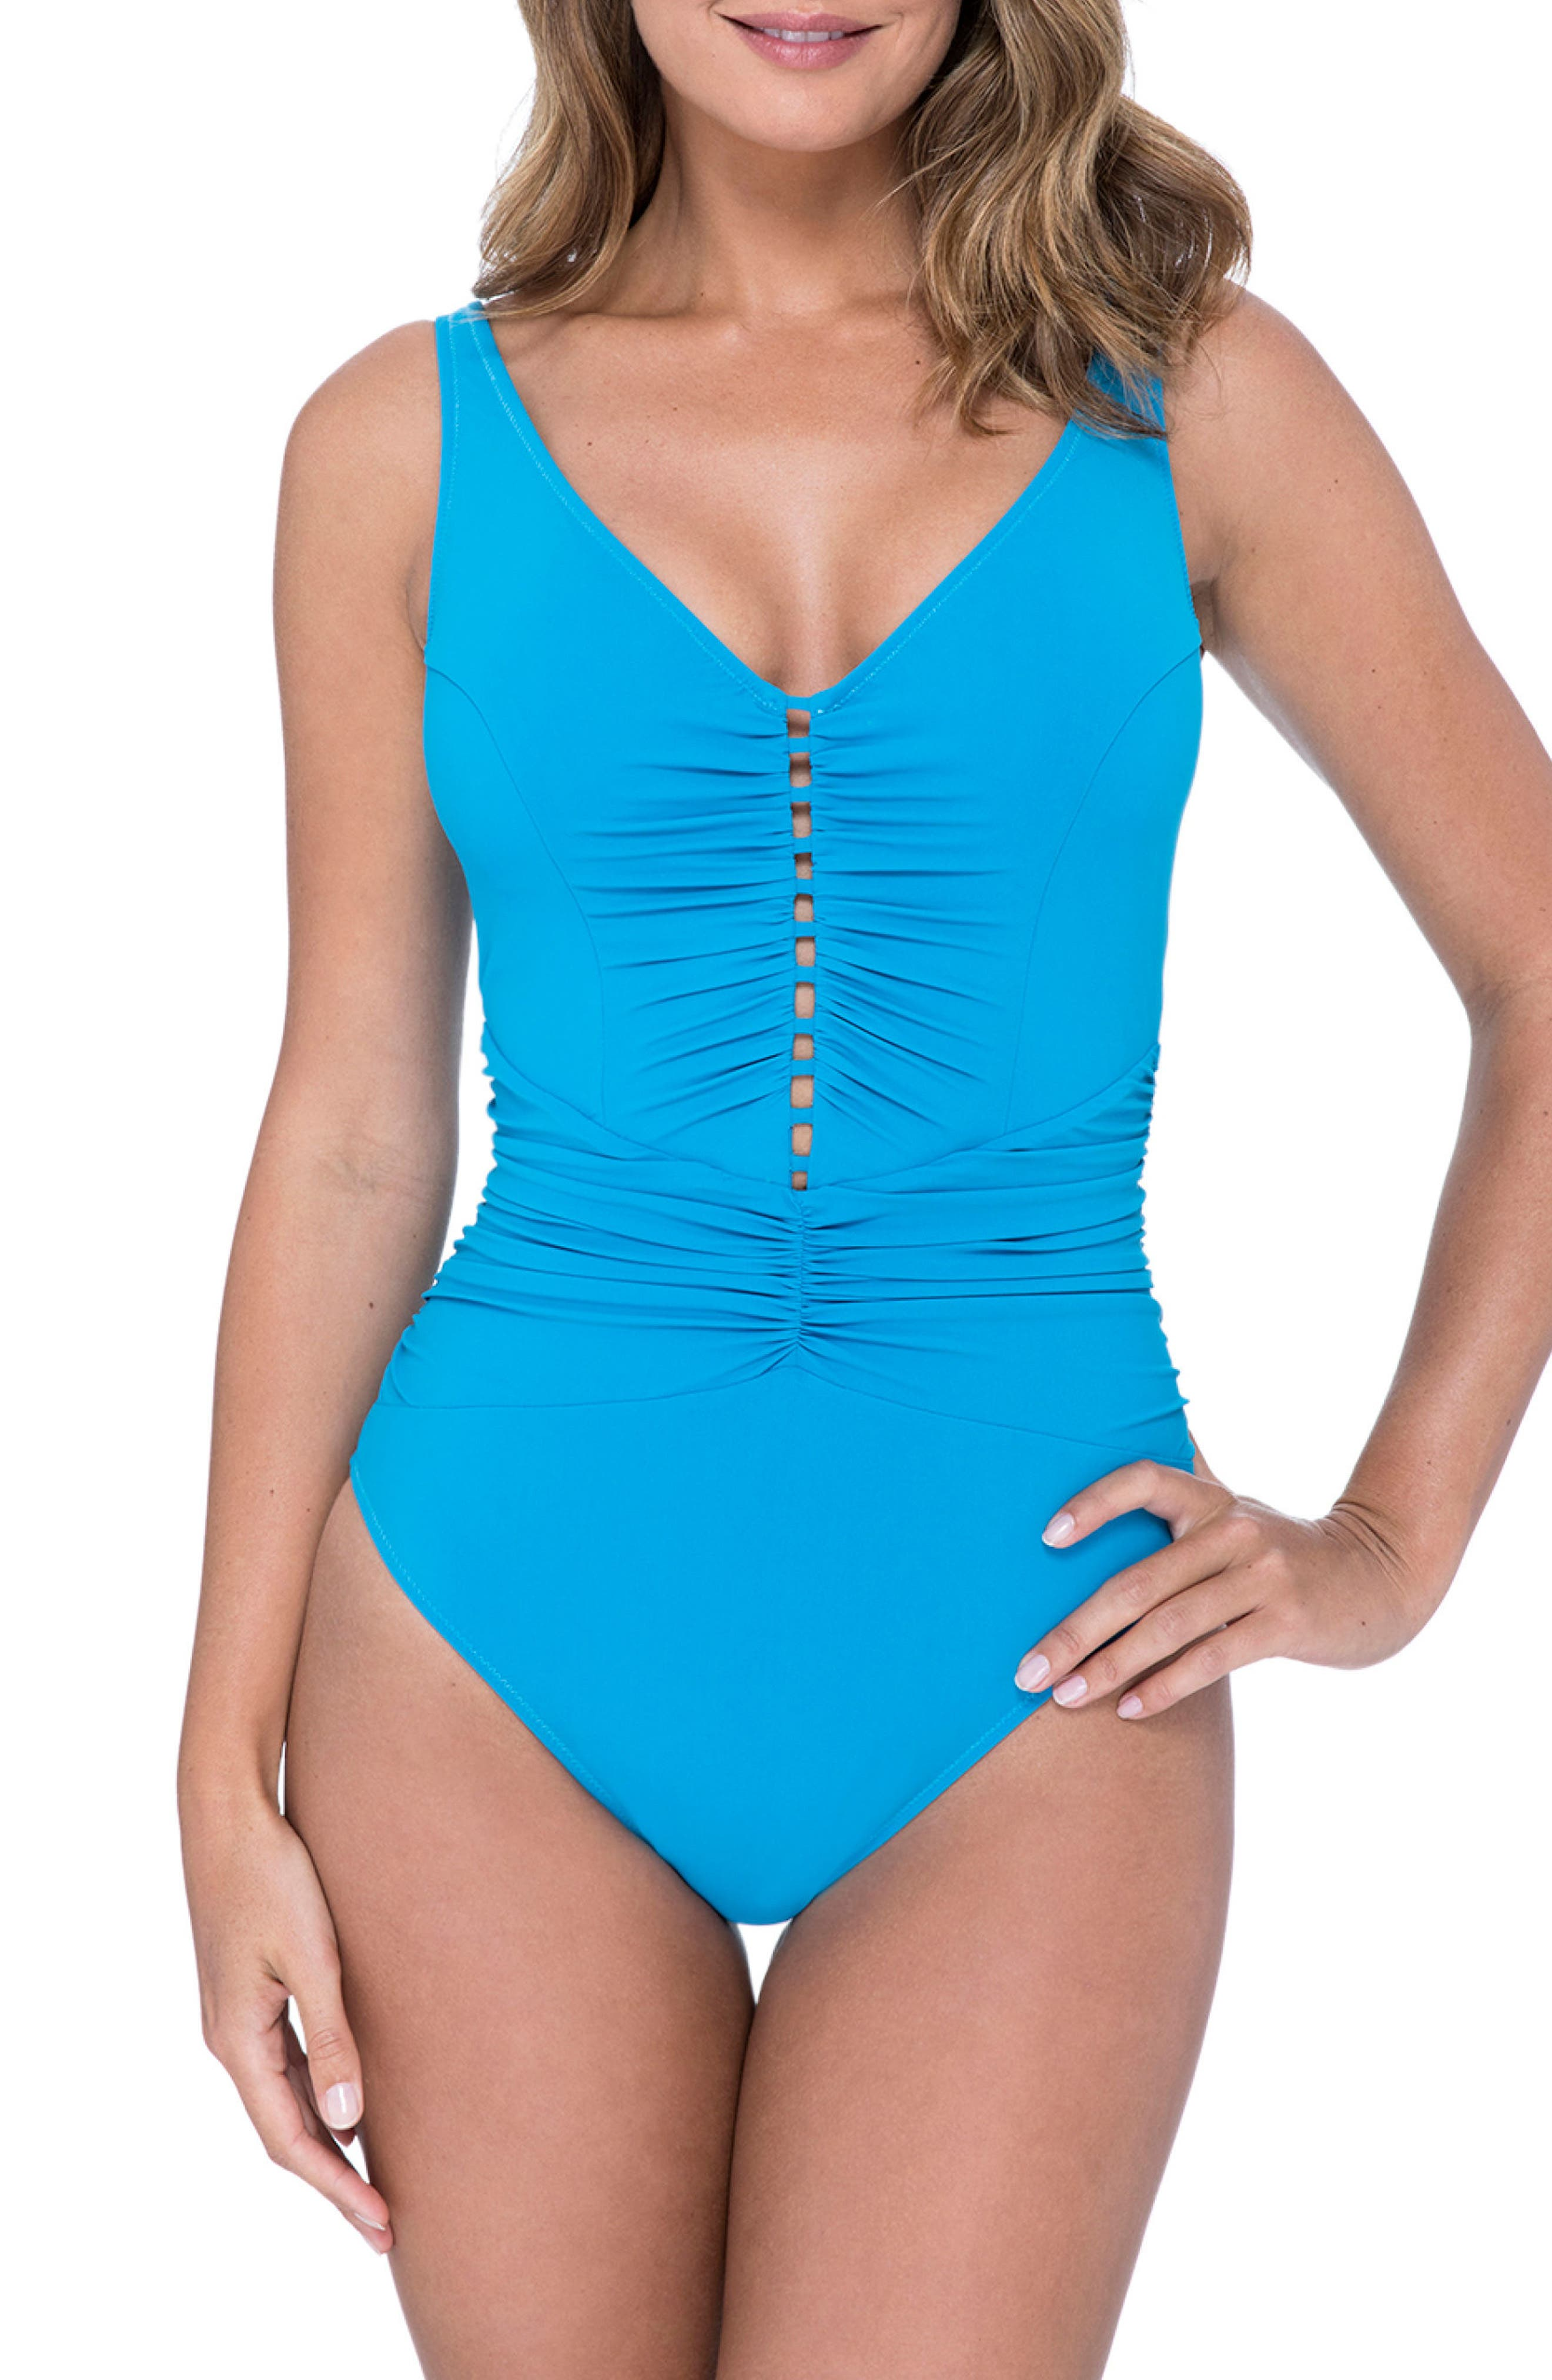 Cocktail Party One-Piece Swimsuit,                             Main thumbnail 1, color,                             PEACOCK